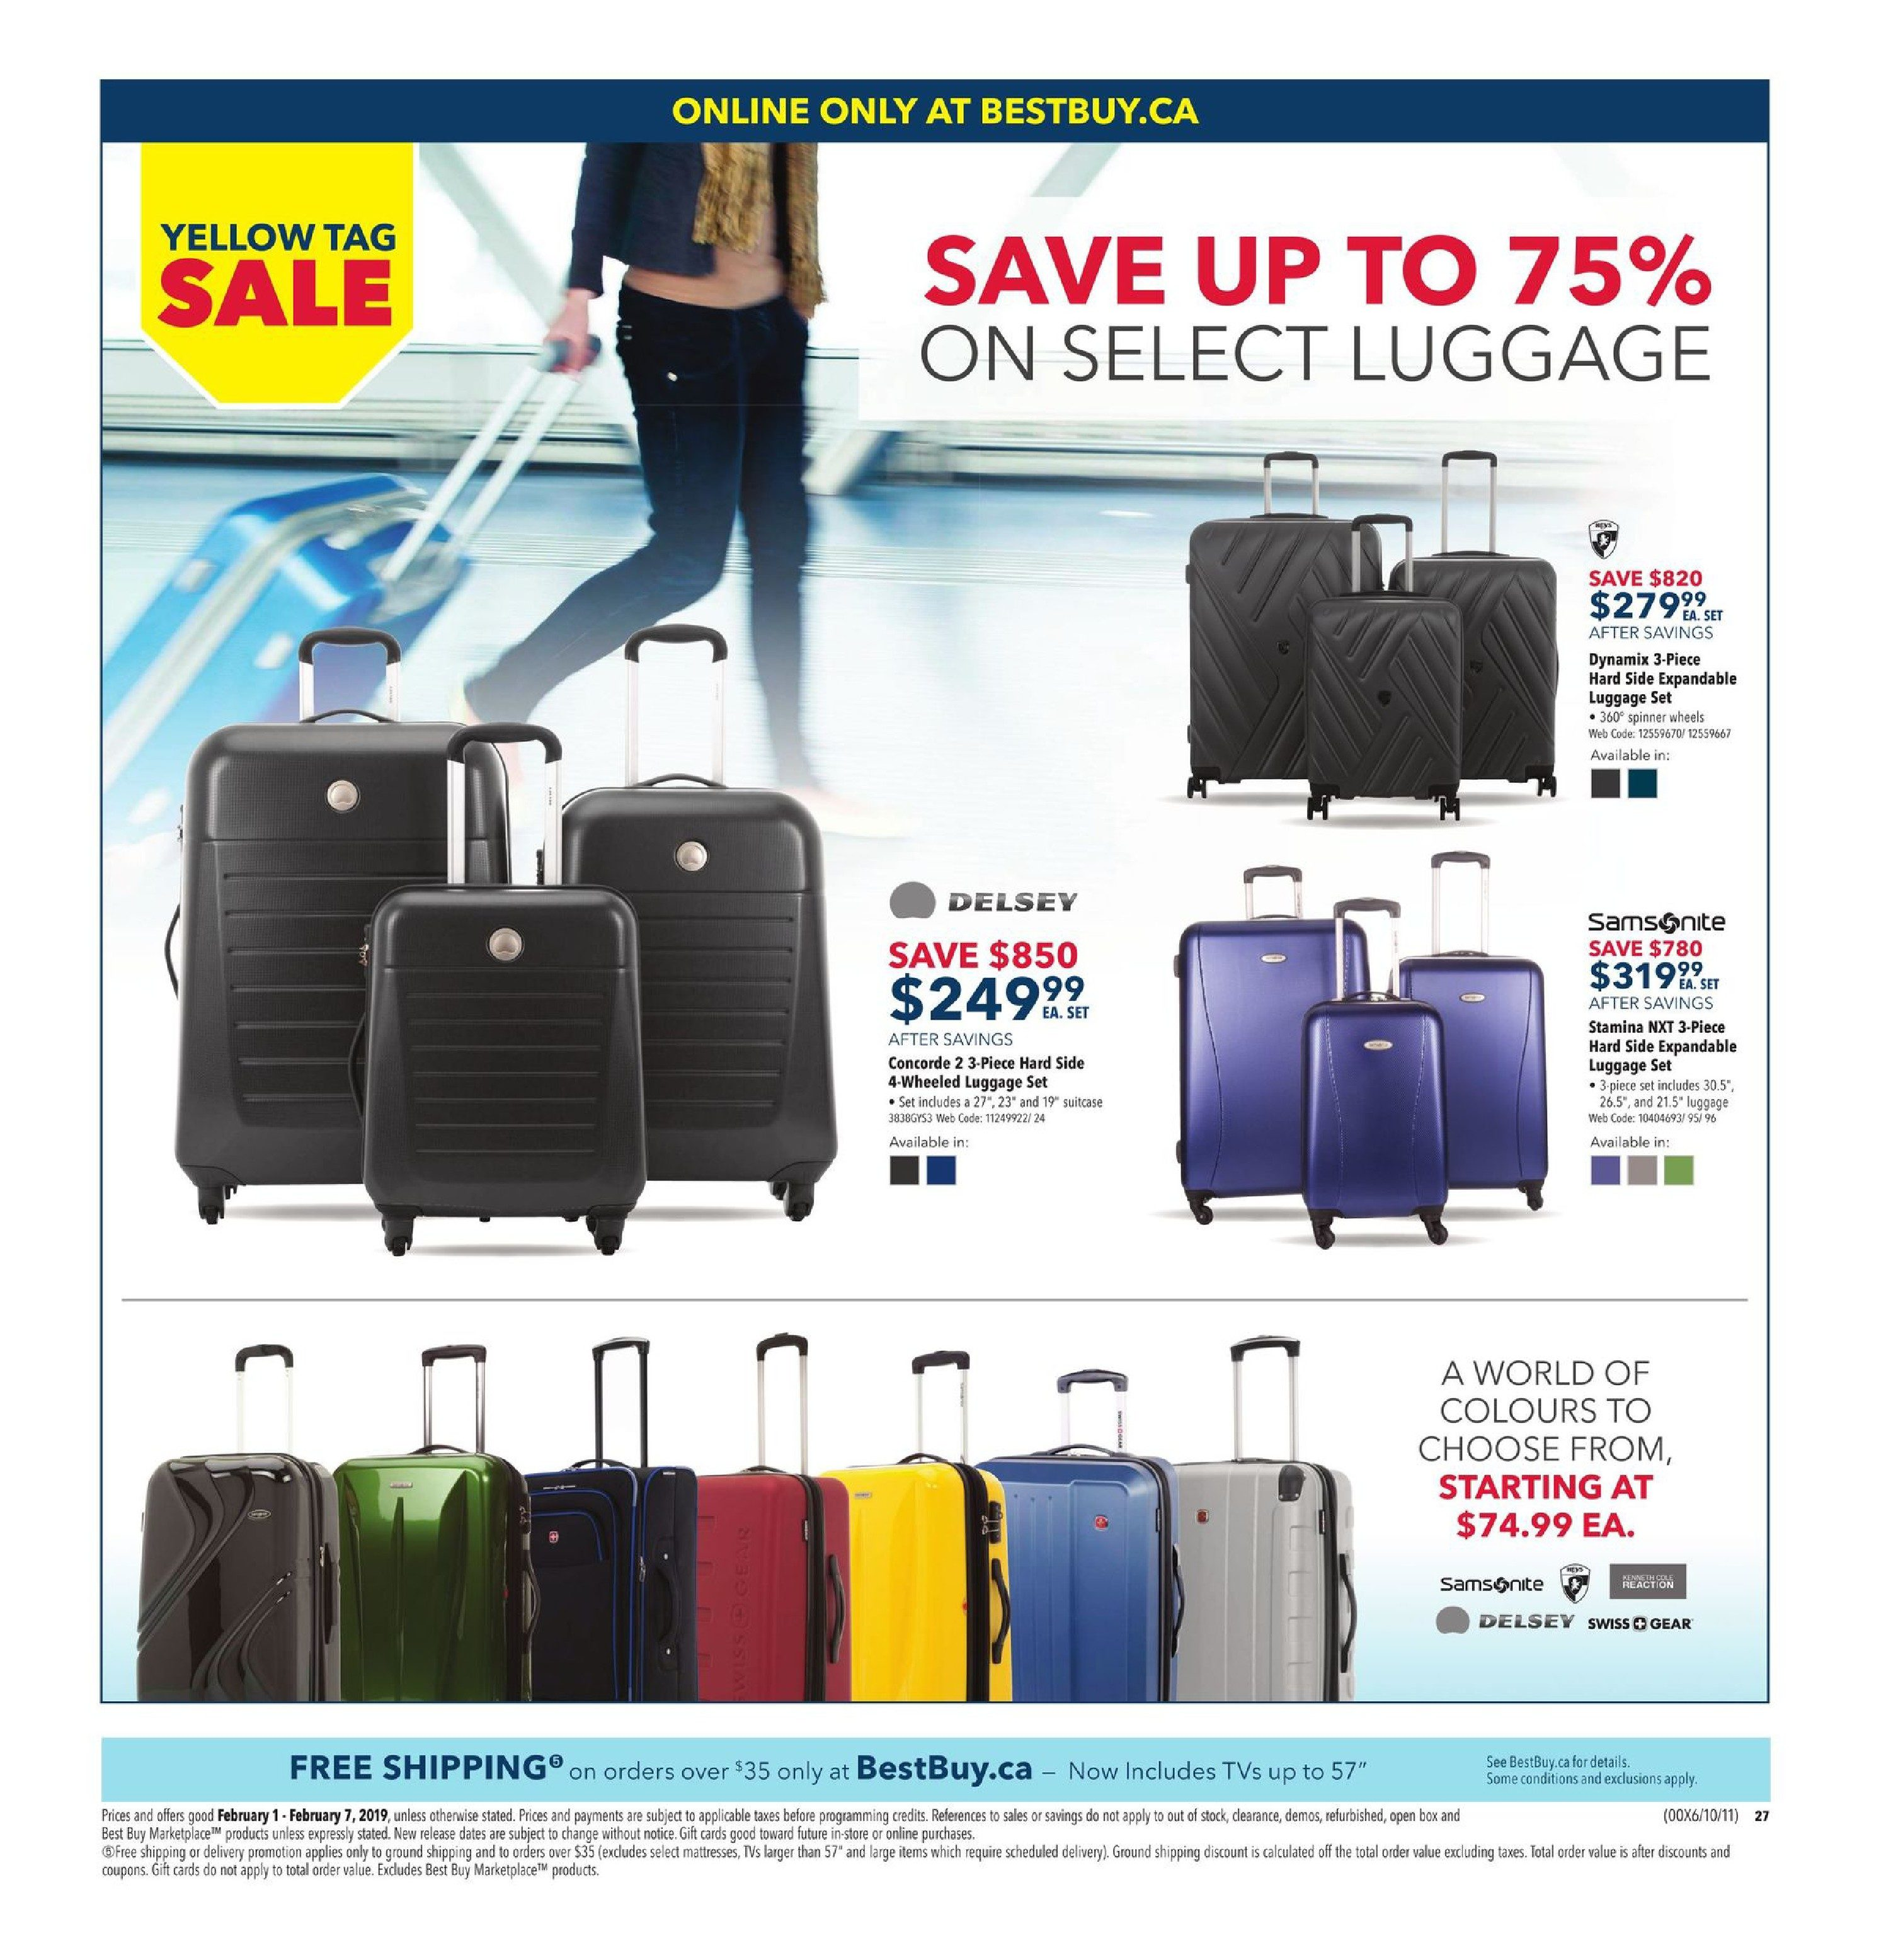 9c54f0363 Best Buy Weekly Flyer - Weekly - Yellow Tag Sale - Feb 1 – 7 -  RedFlagDeals.com